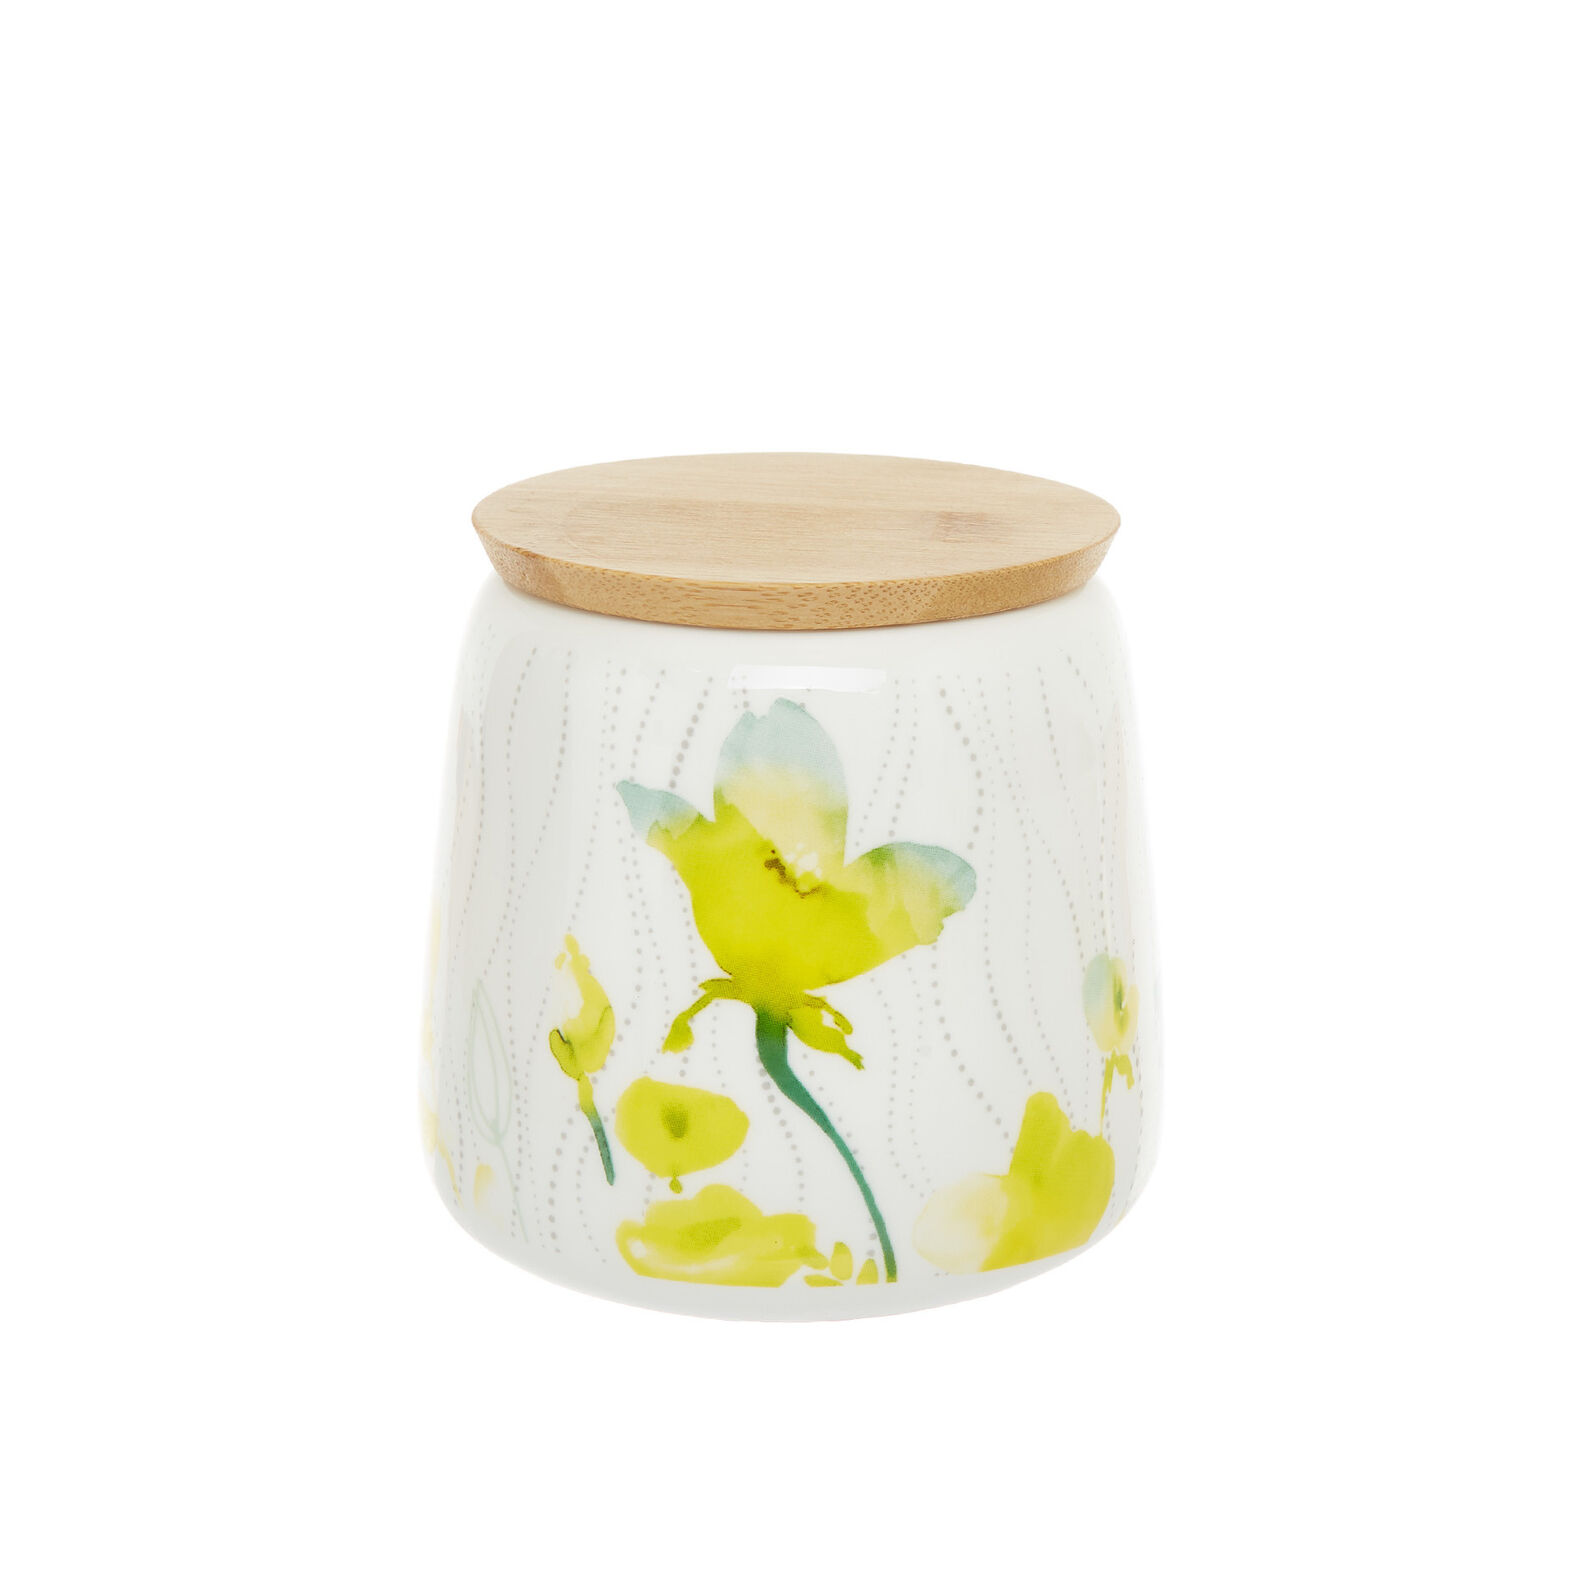 Jar in new bone China with yellow flowers